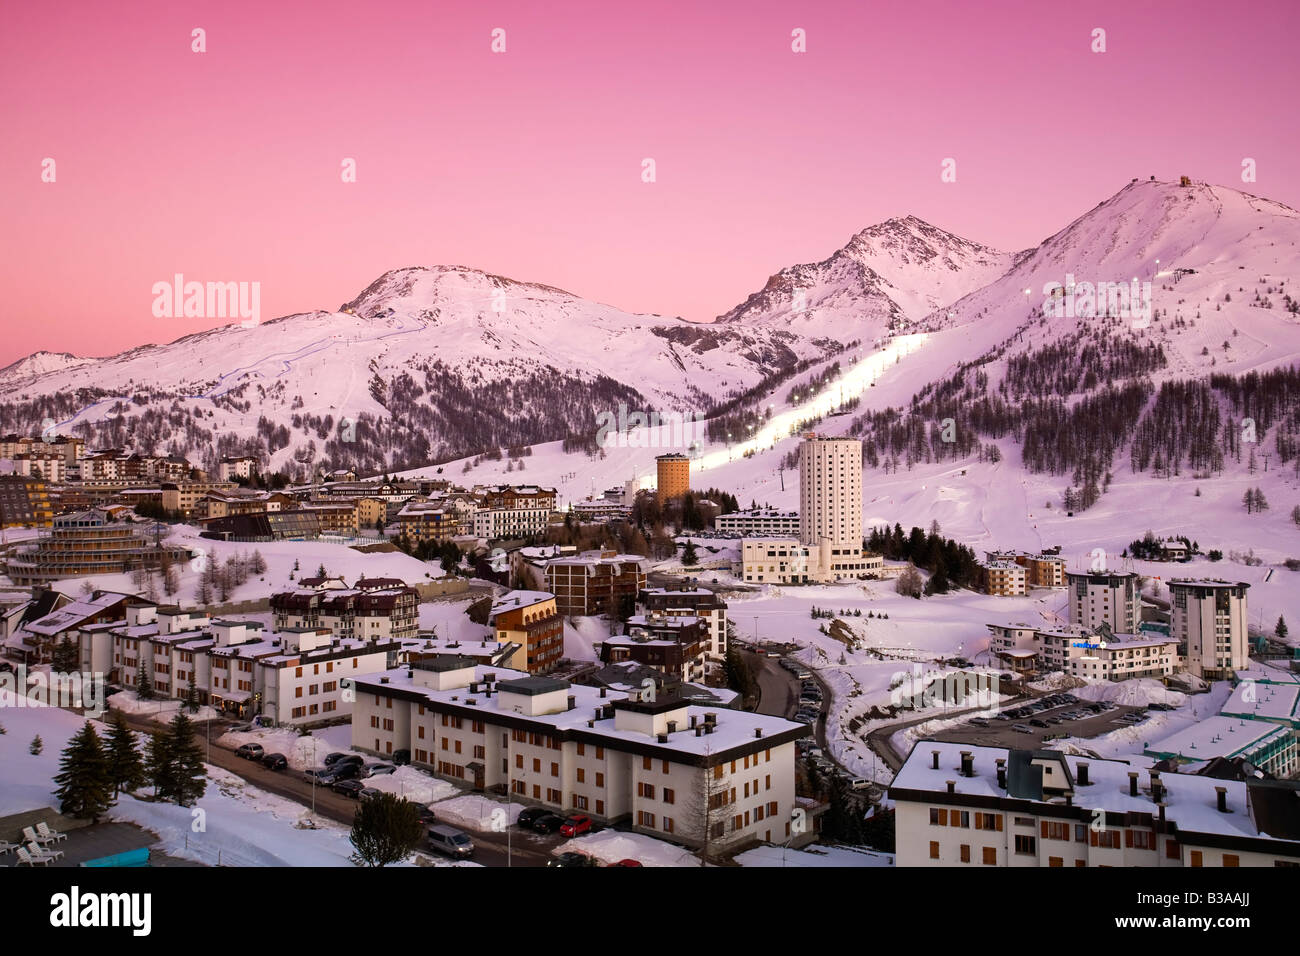 Sestriere Ski Resort Site Of 2006 Winter Olympics Turin Province Piedmont Italy